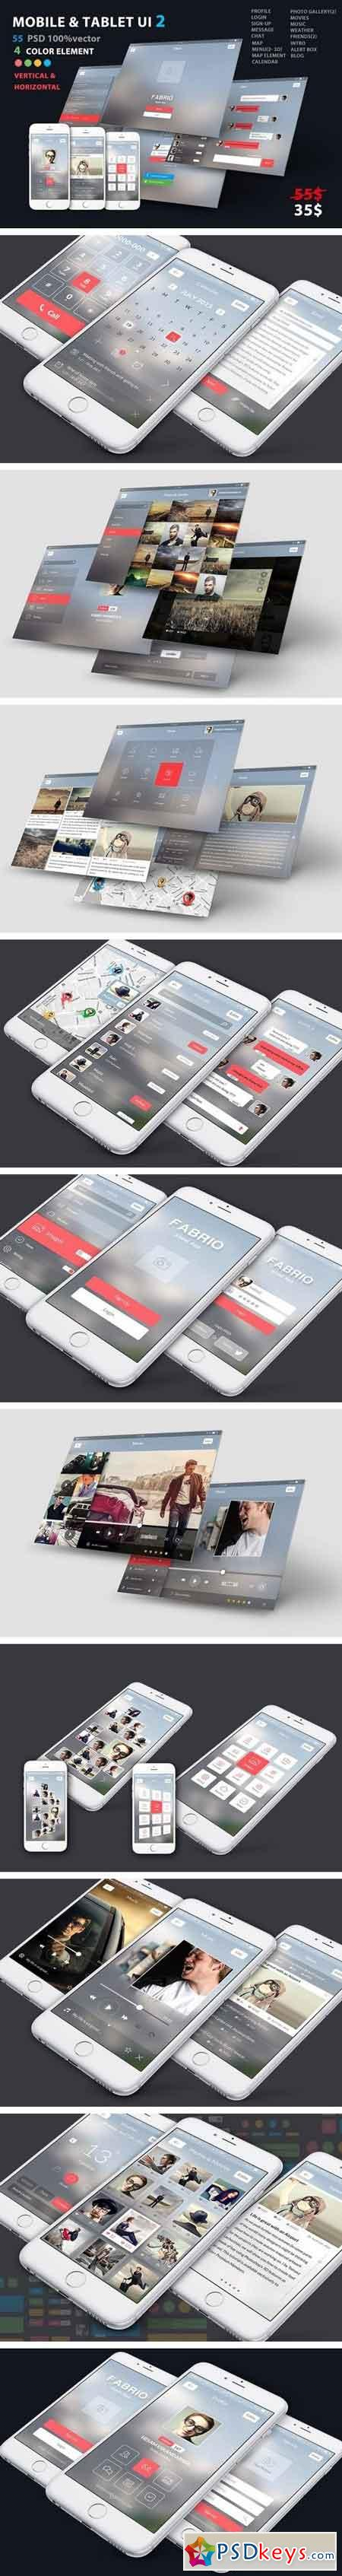 Mobile and Tablet UX UI kit 2 1966000